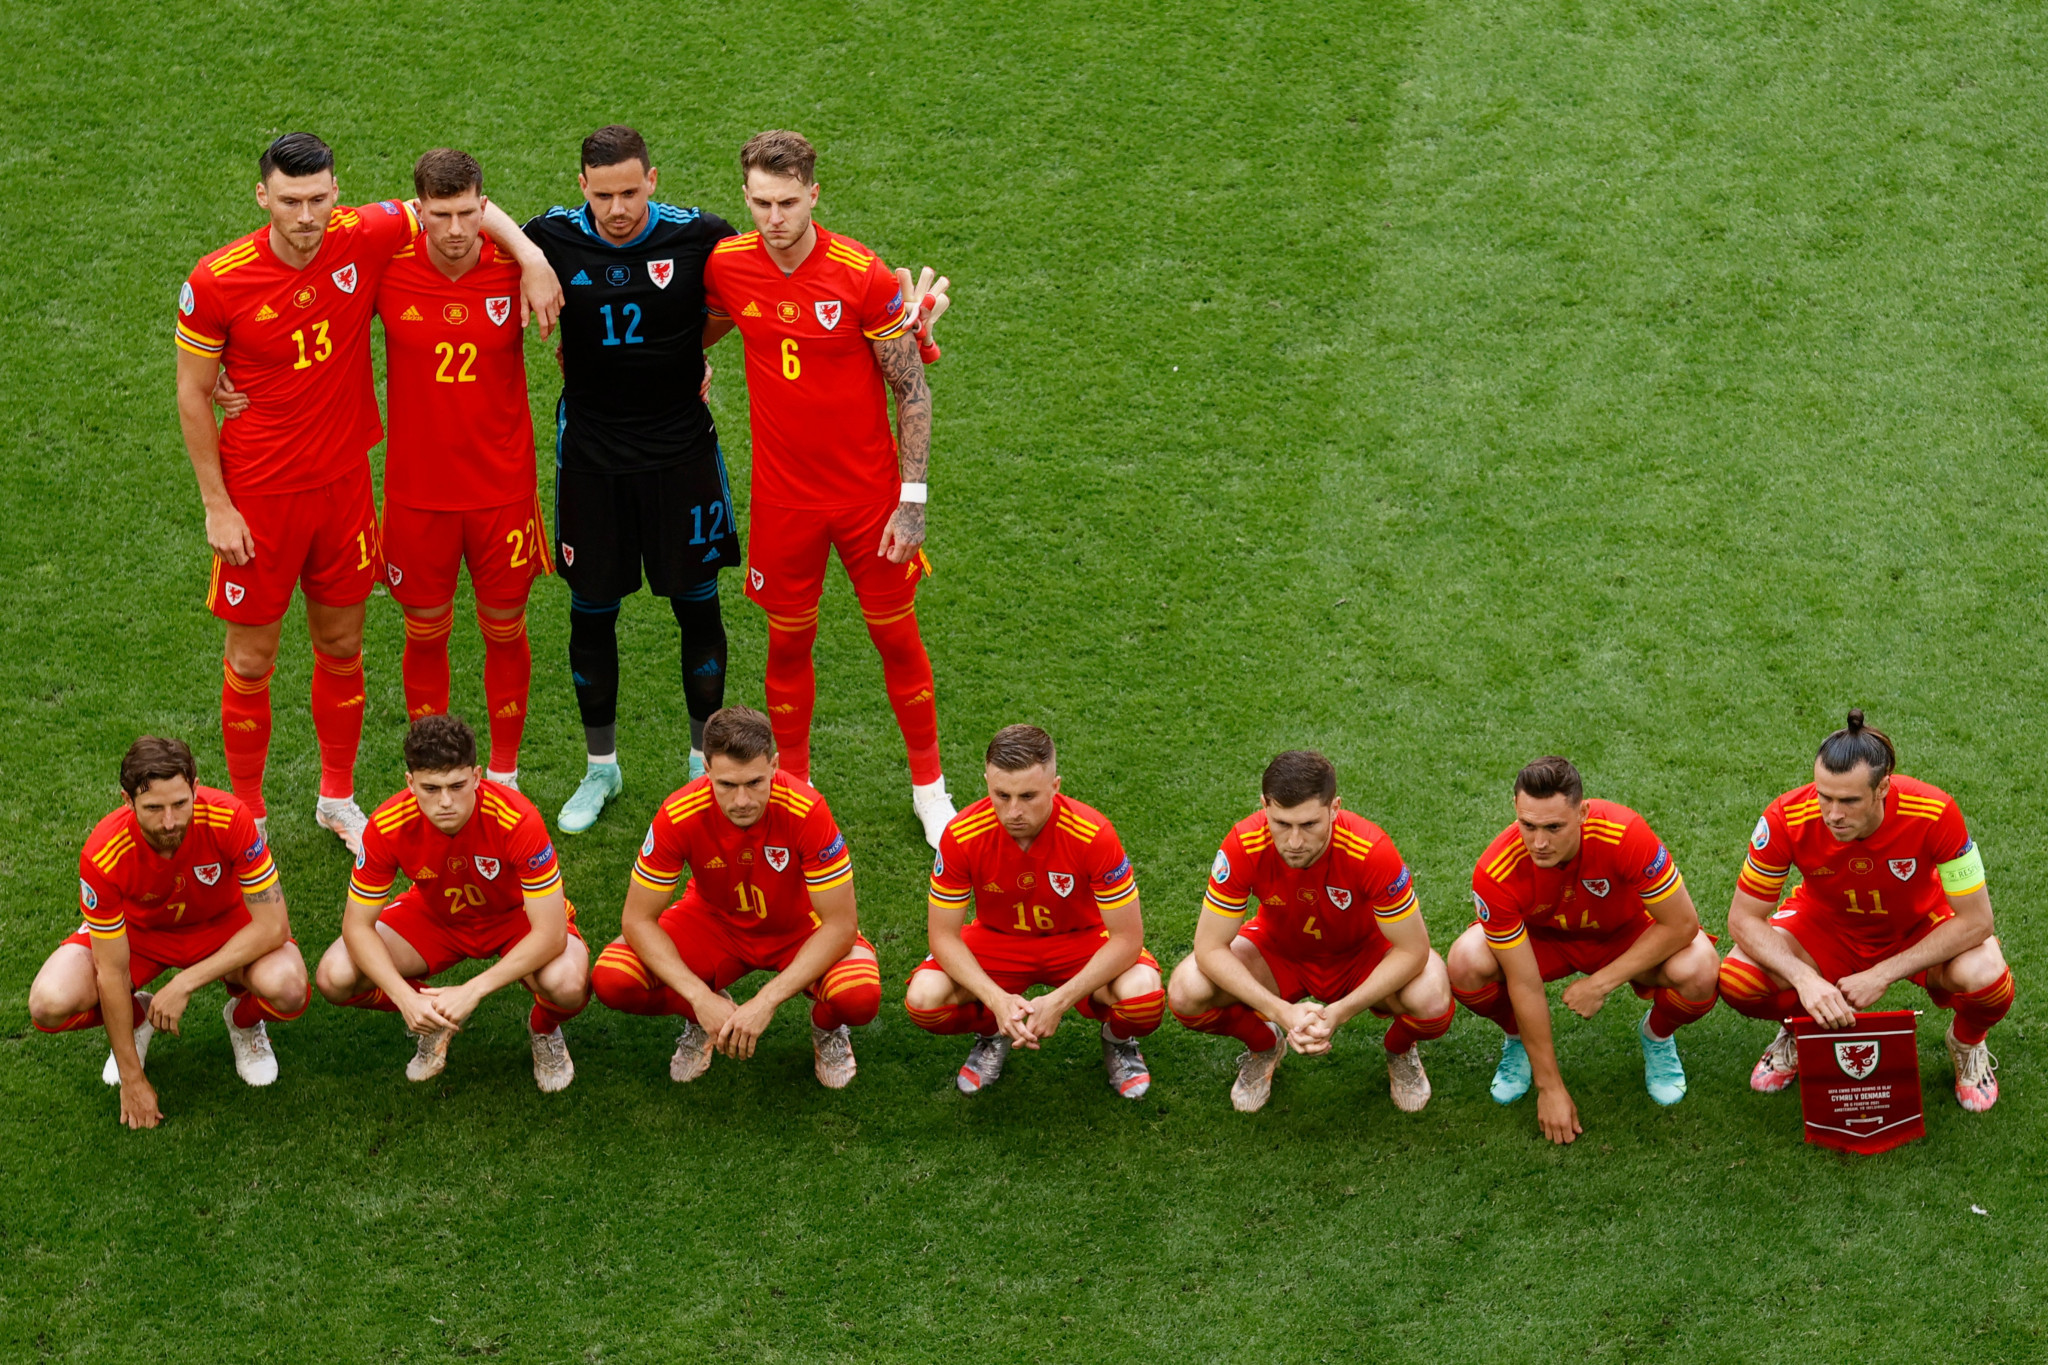 The Wales men's national team has only once qualified to the FIFA World Cup, while the women's side is yet to make its World Cup bow ©Getty Images